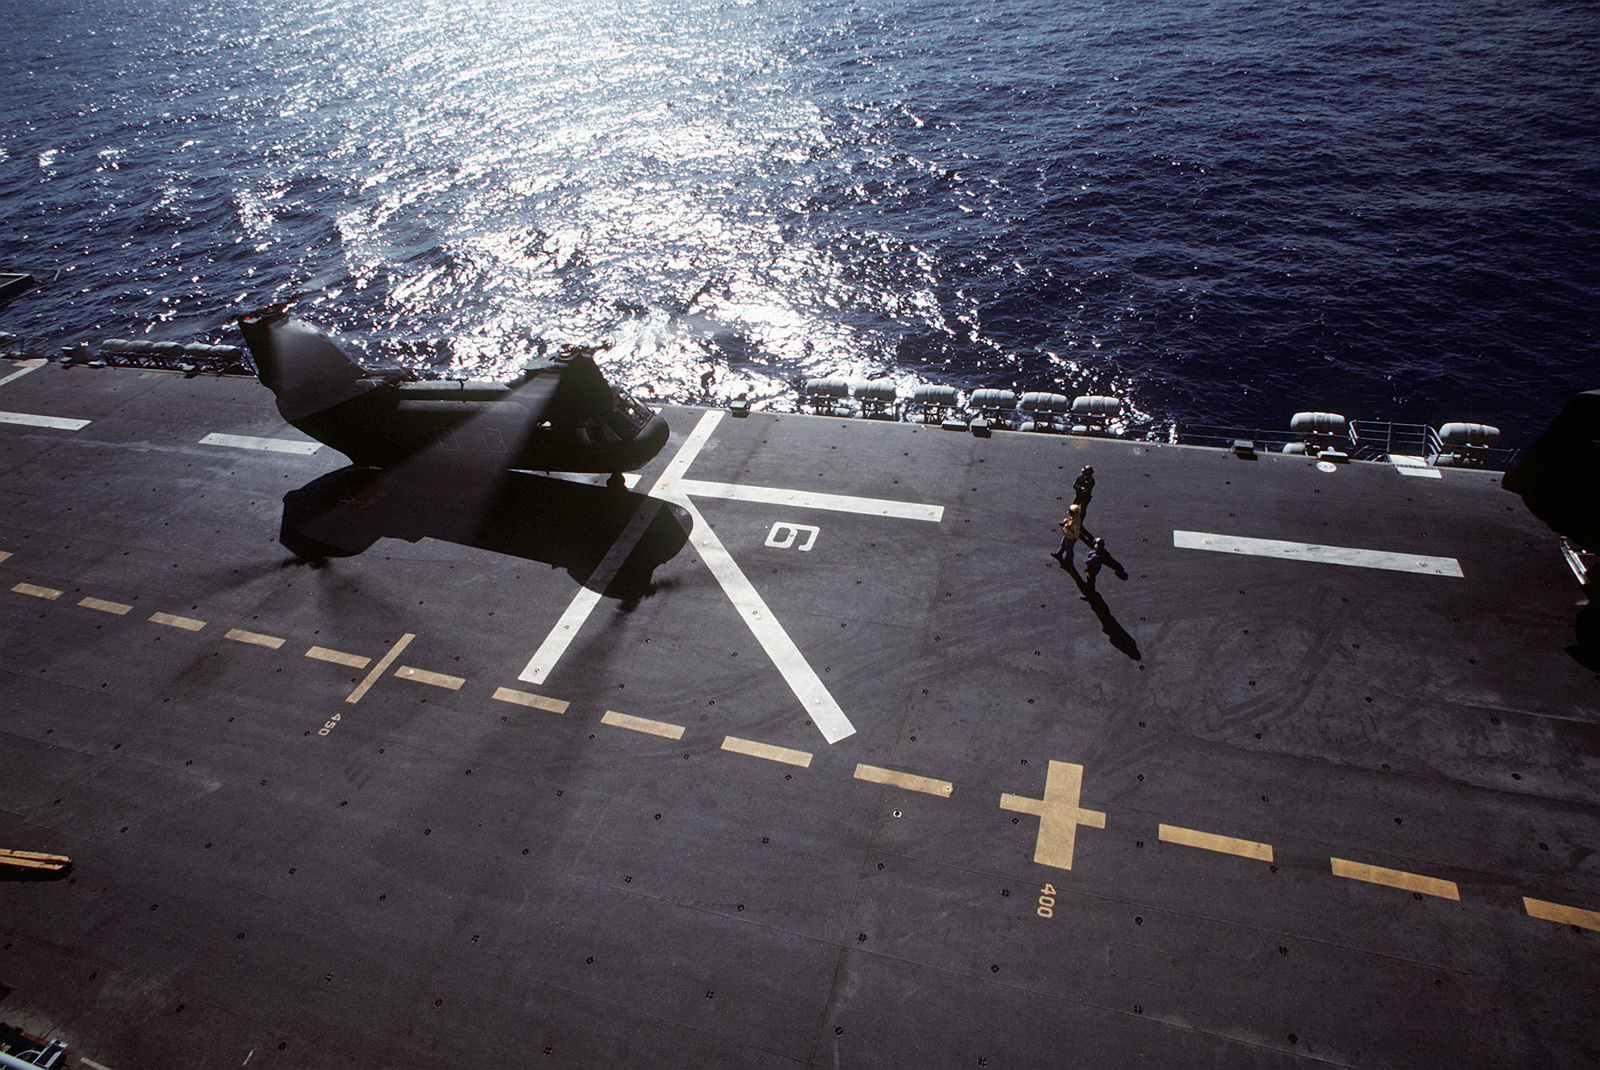 A CH-46 Sea Knight helicopter prepares for lift-off aboard the amphibious assault ship USS SAIPAN (LHA-2) during exercise Ocean Venture '81